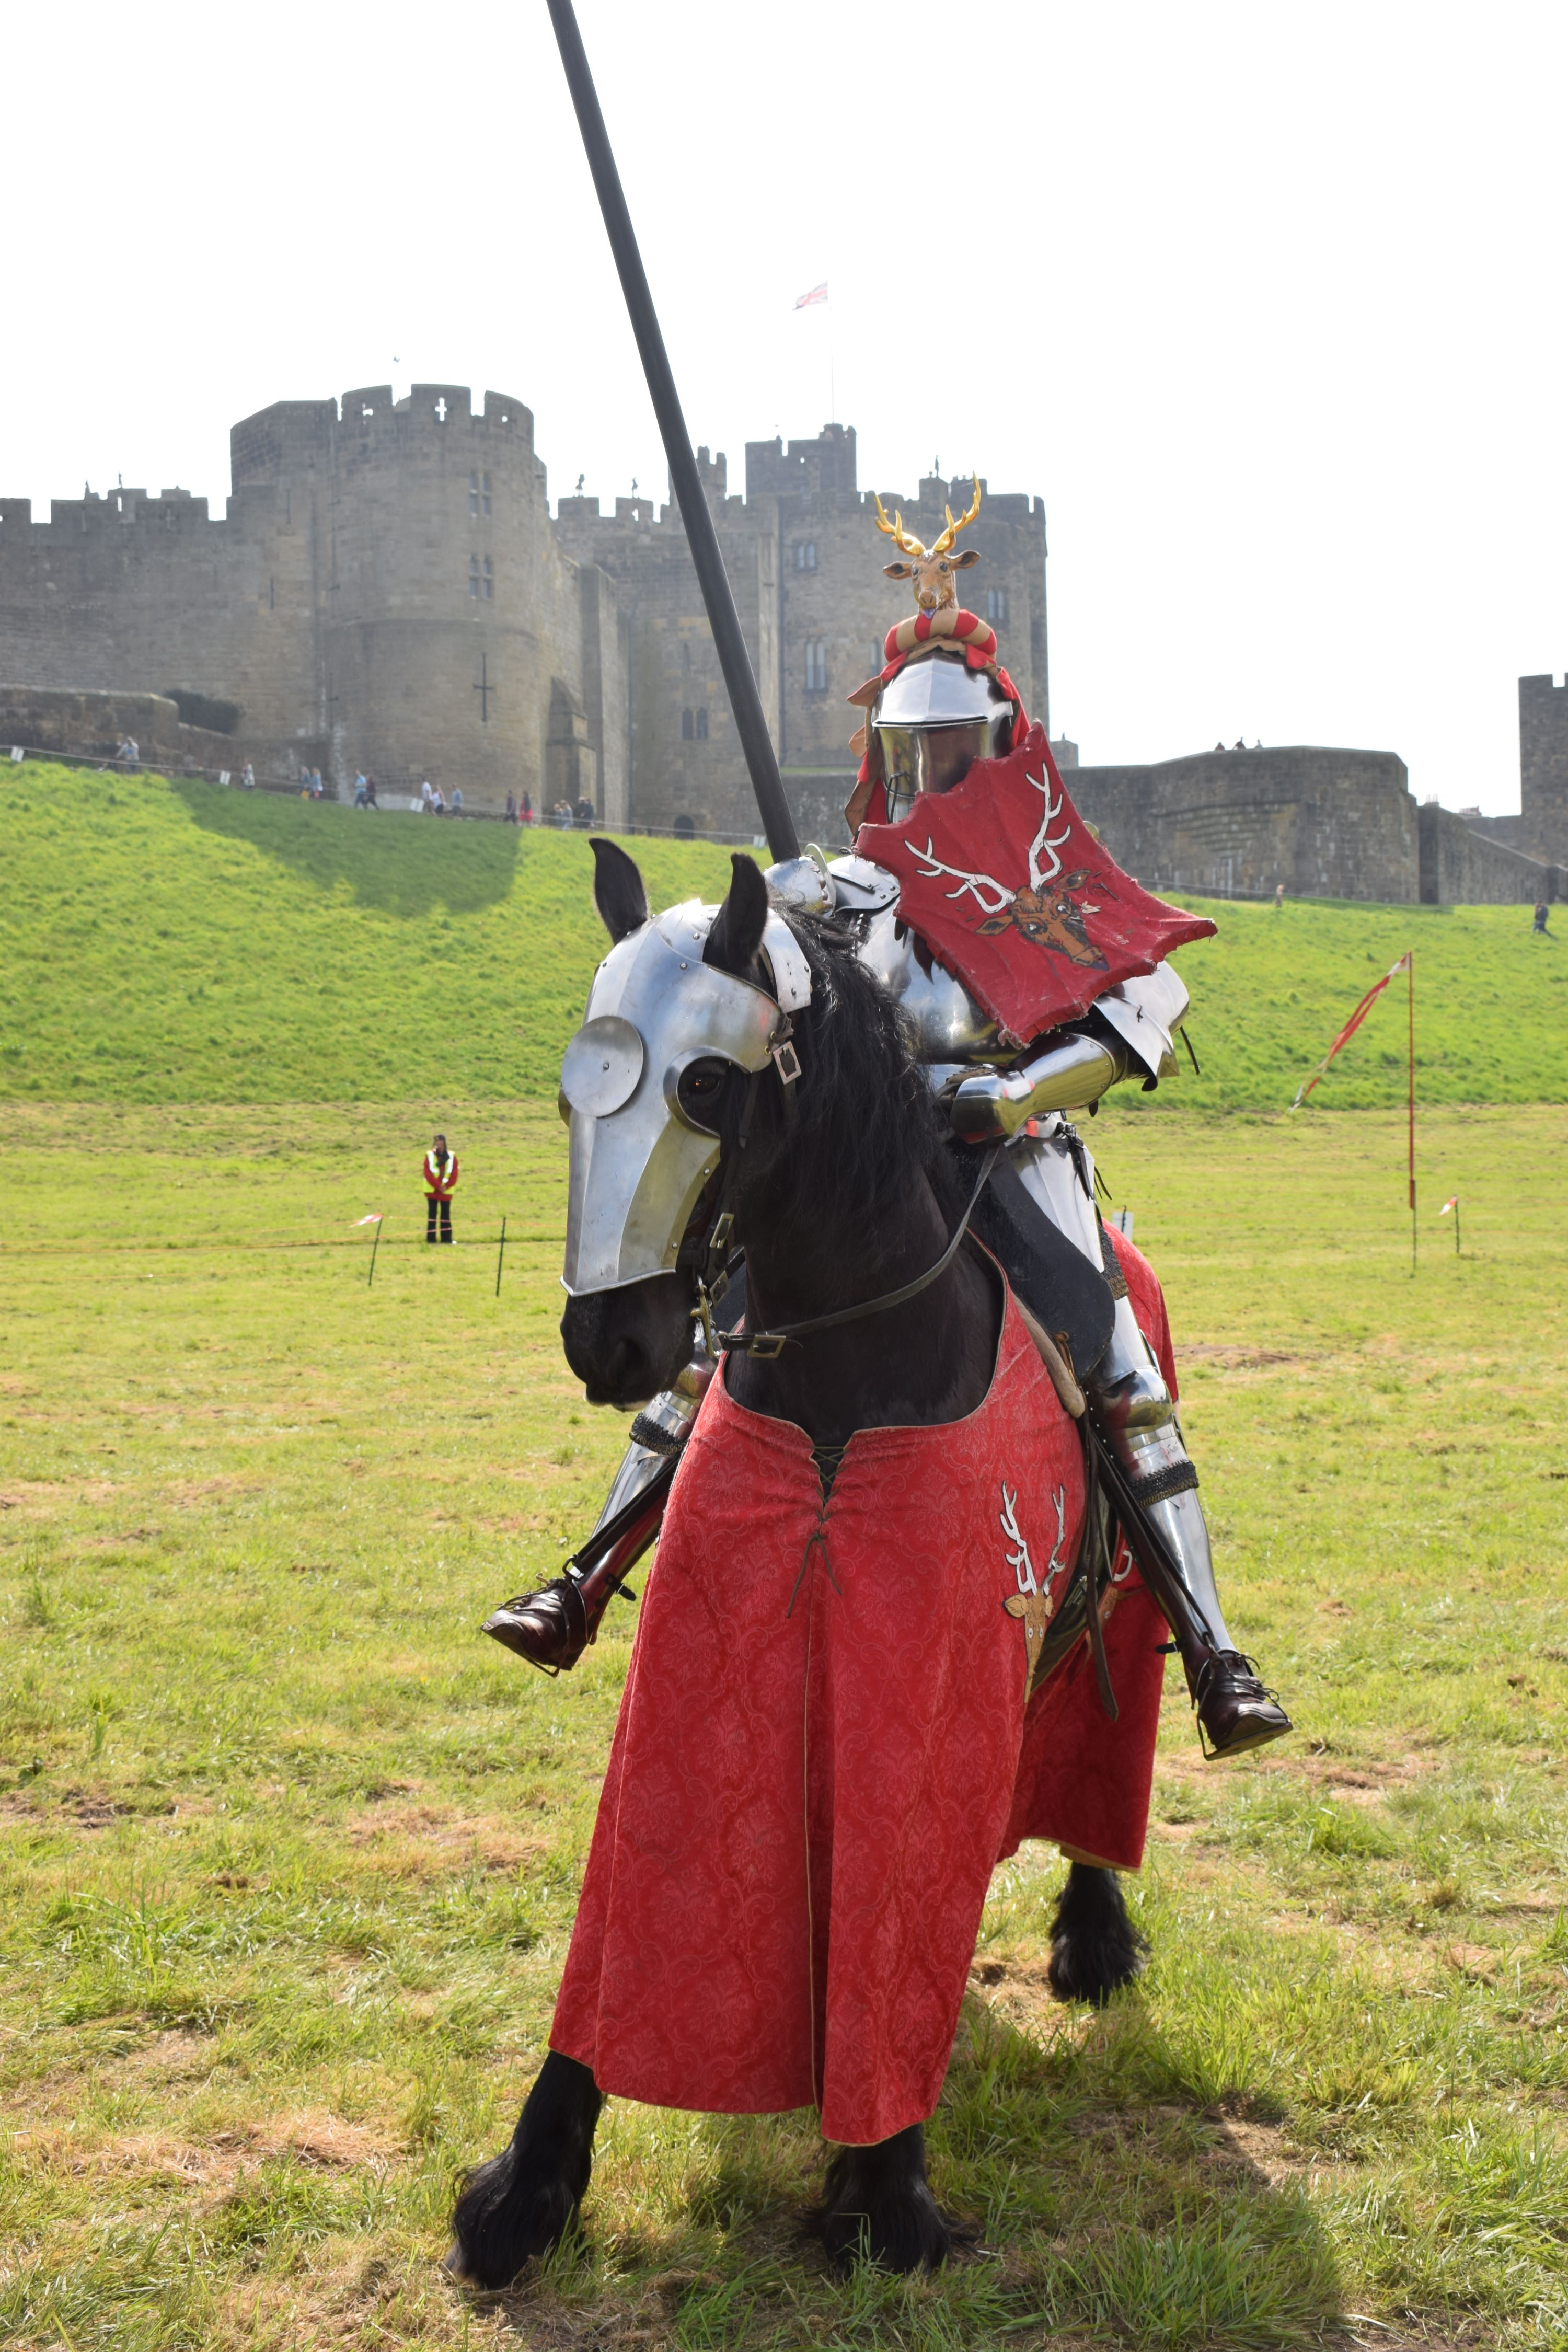 Jousting, wizards and broomsticks all summer at Alnwick Castle!